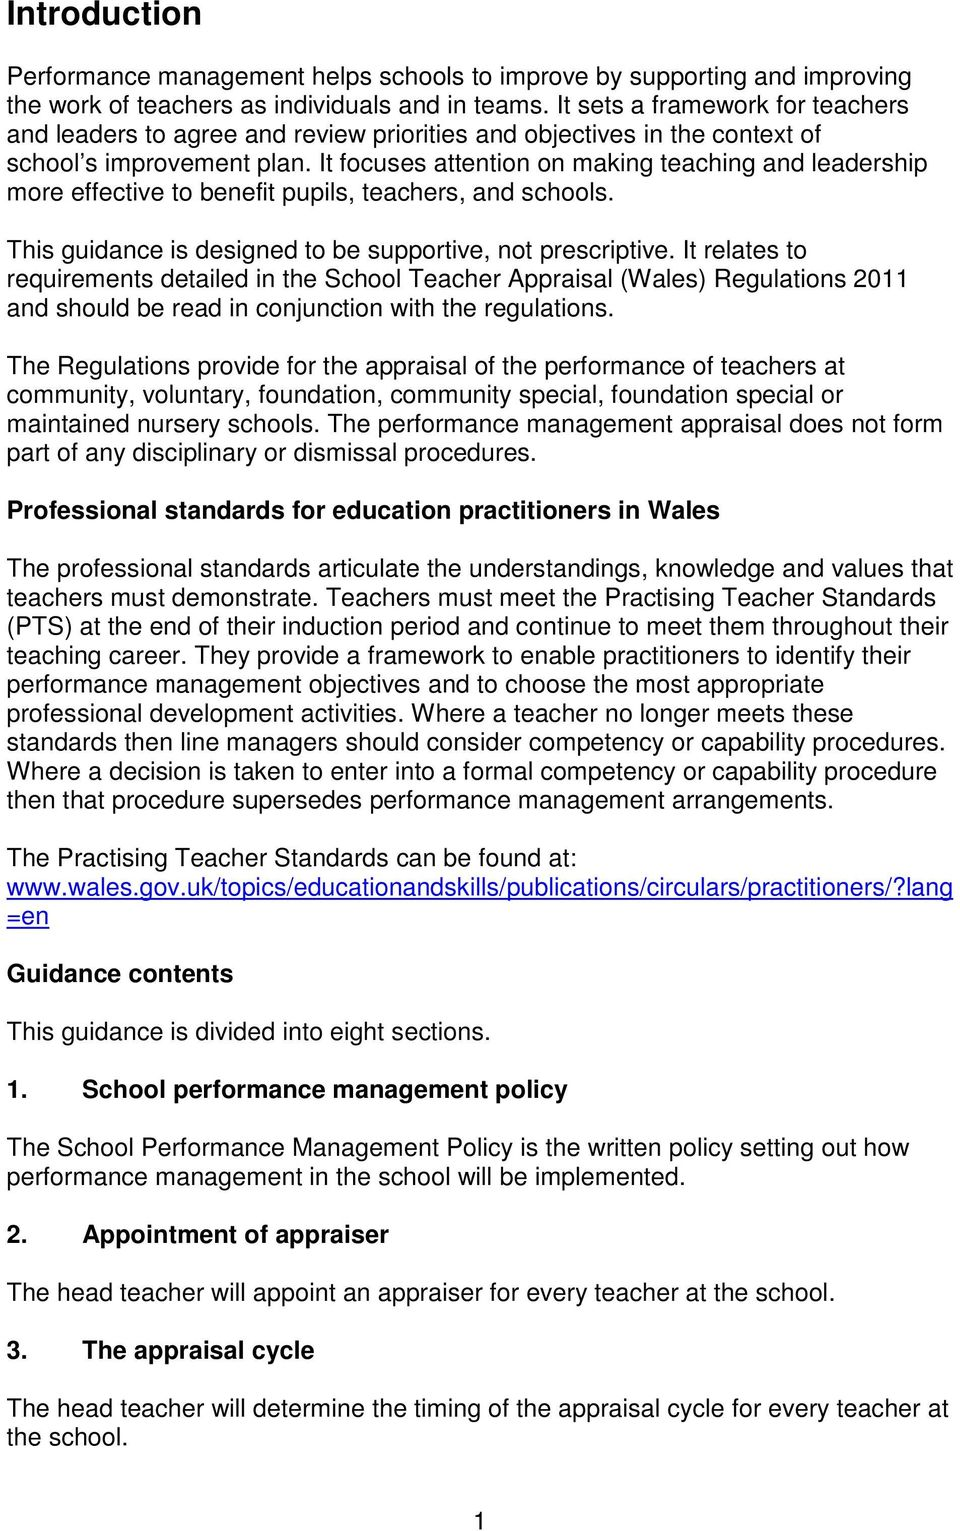 It focuses attention on making teaching and leadership more effective to benefit pupils, teachers, and schools. This guidance is designed to be supportive, not prescriptive.